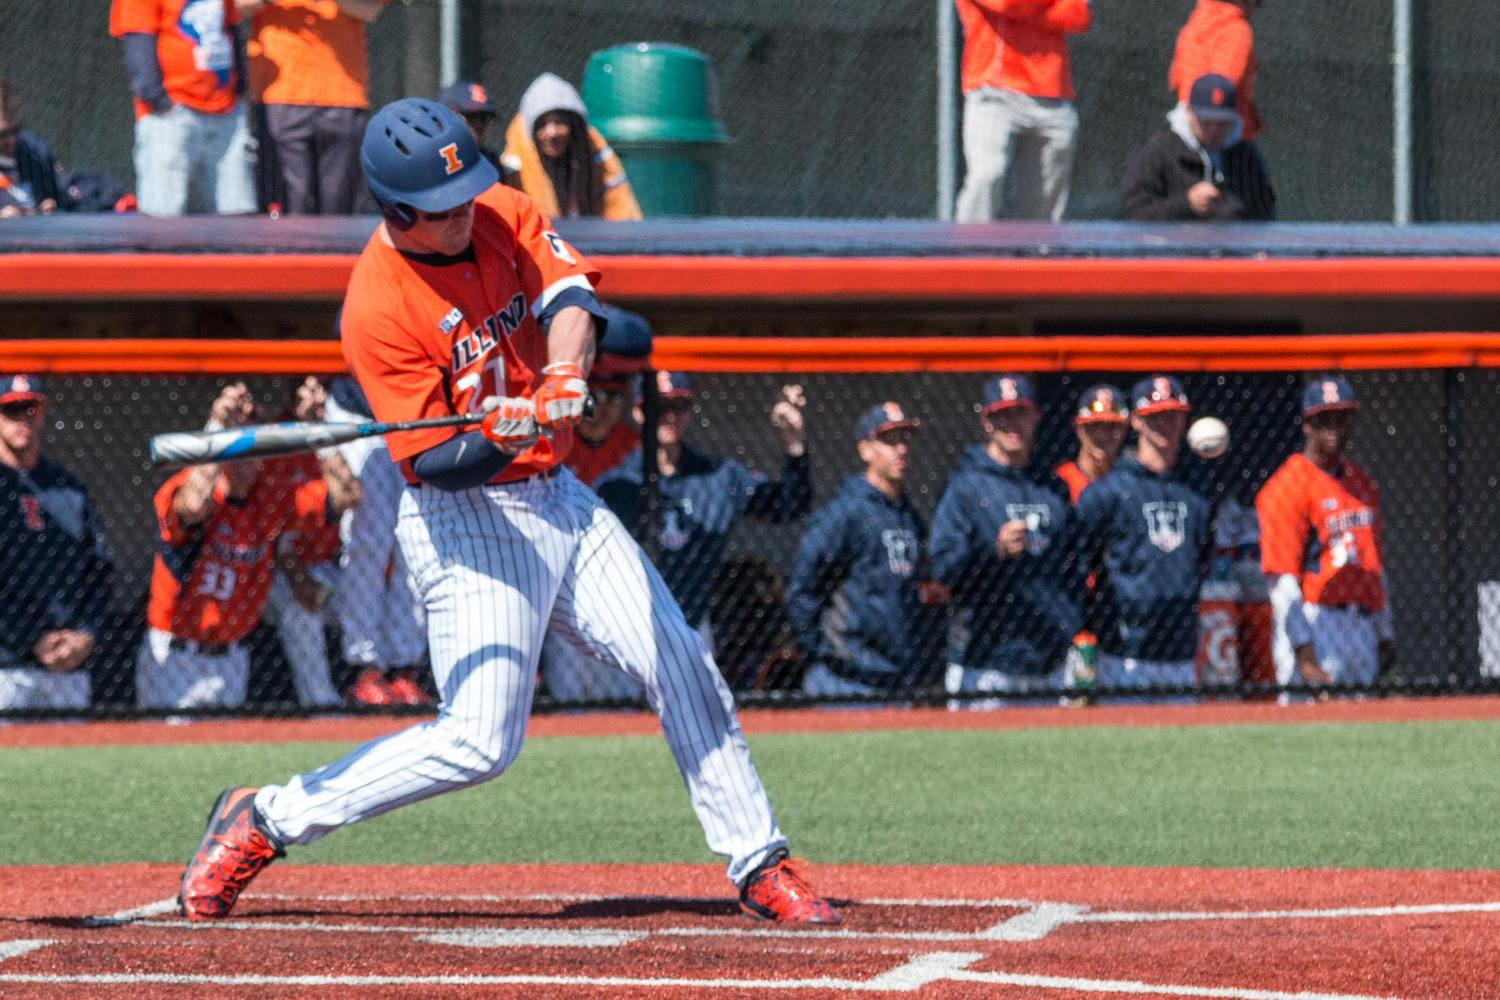 Pat McInerney takes a swing against Penn State on March 27, 2016 at Illinois Field.